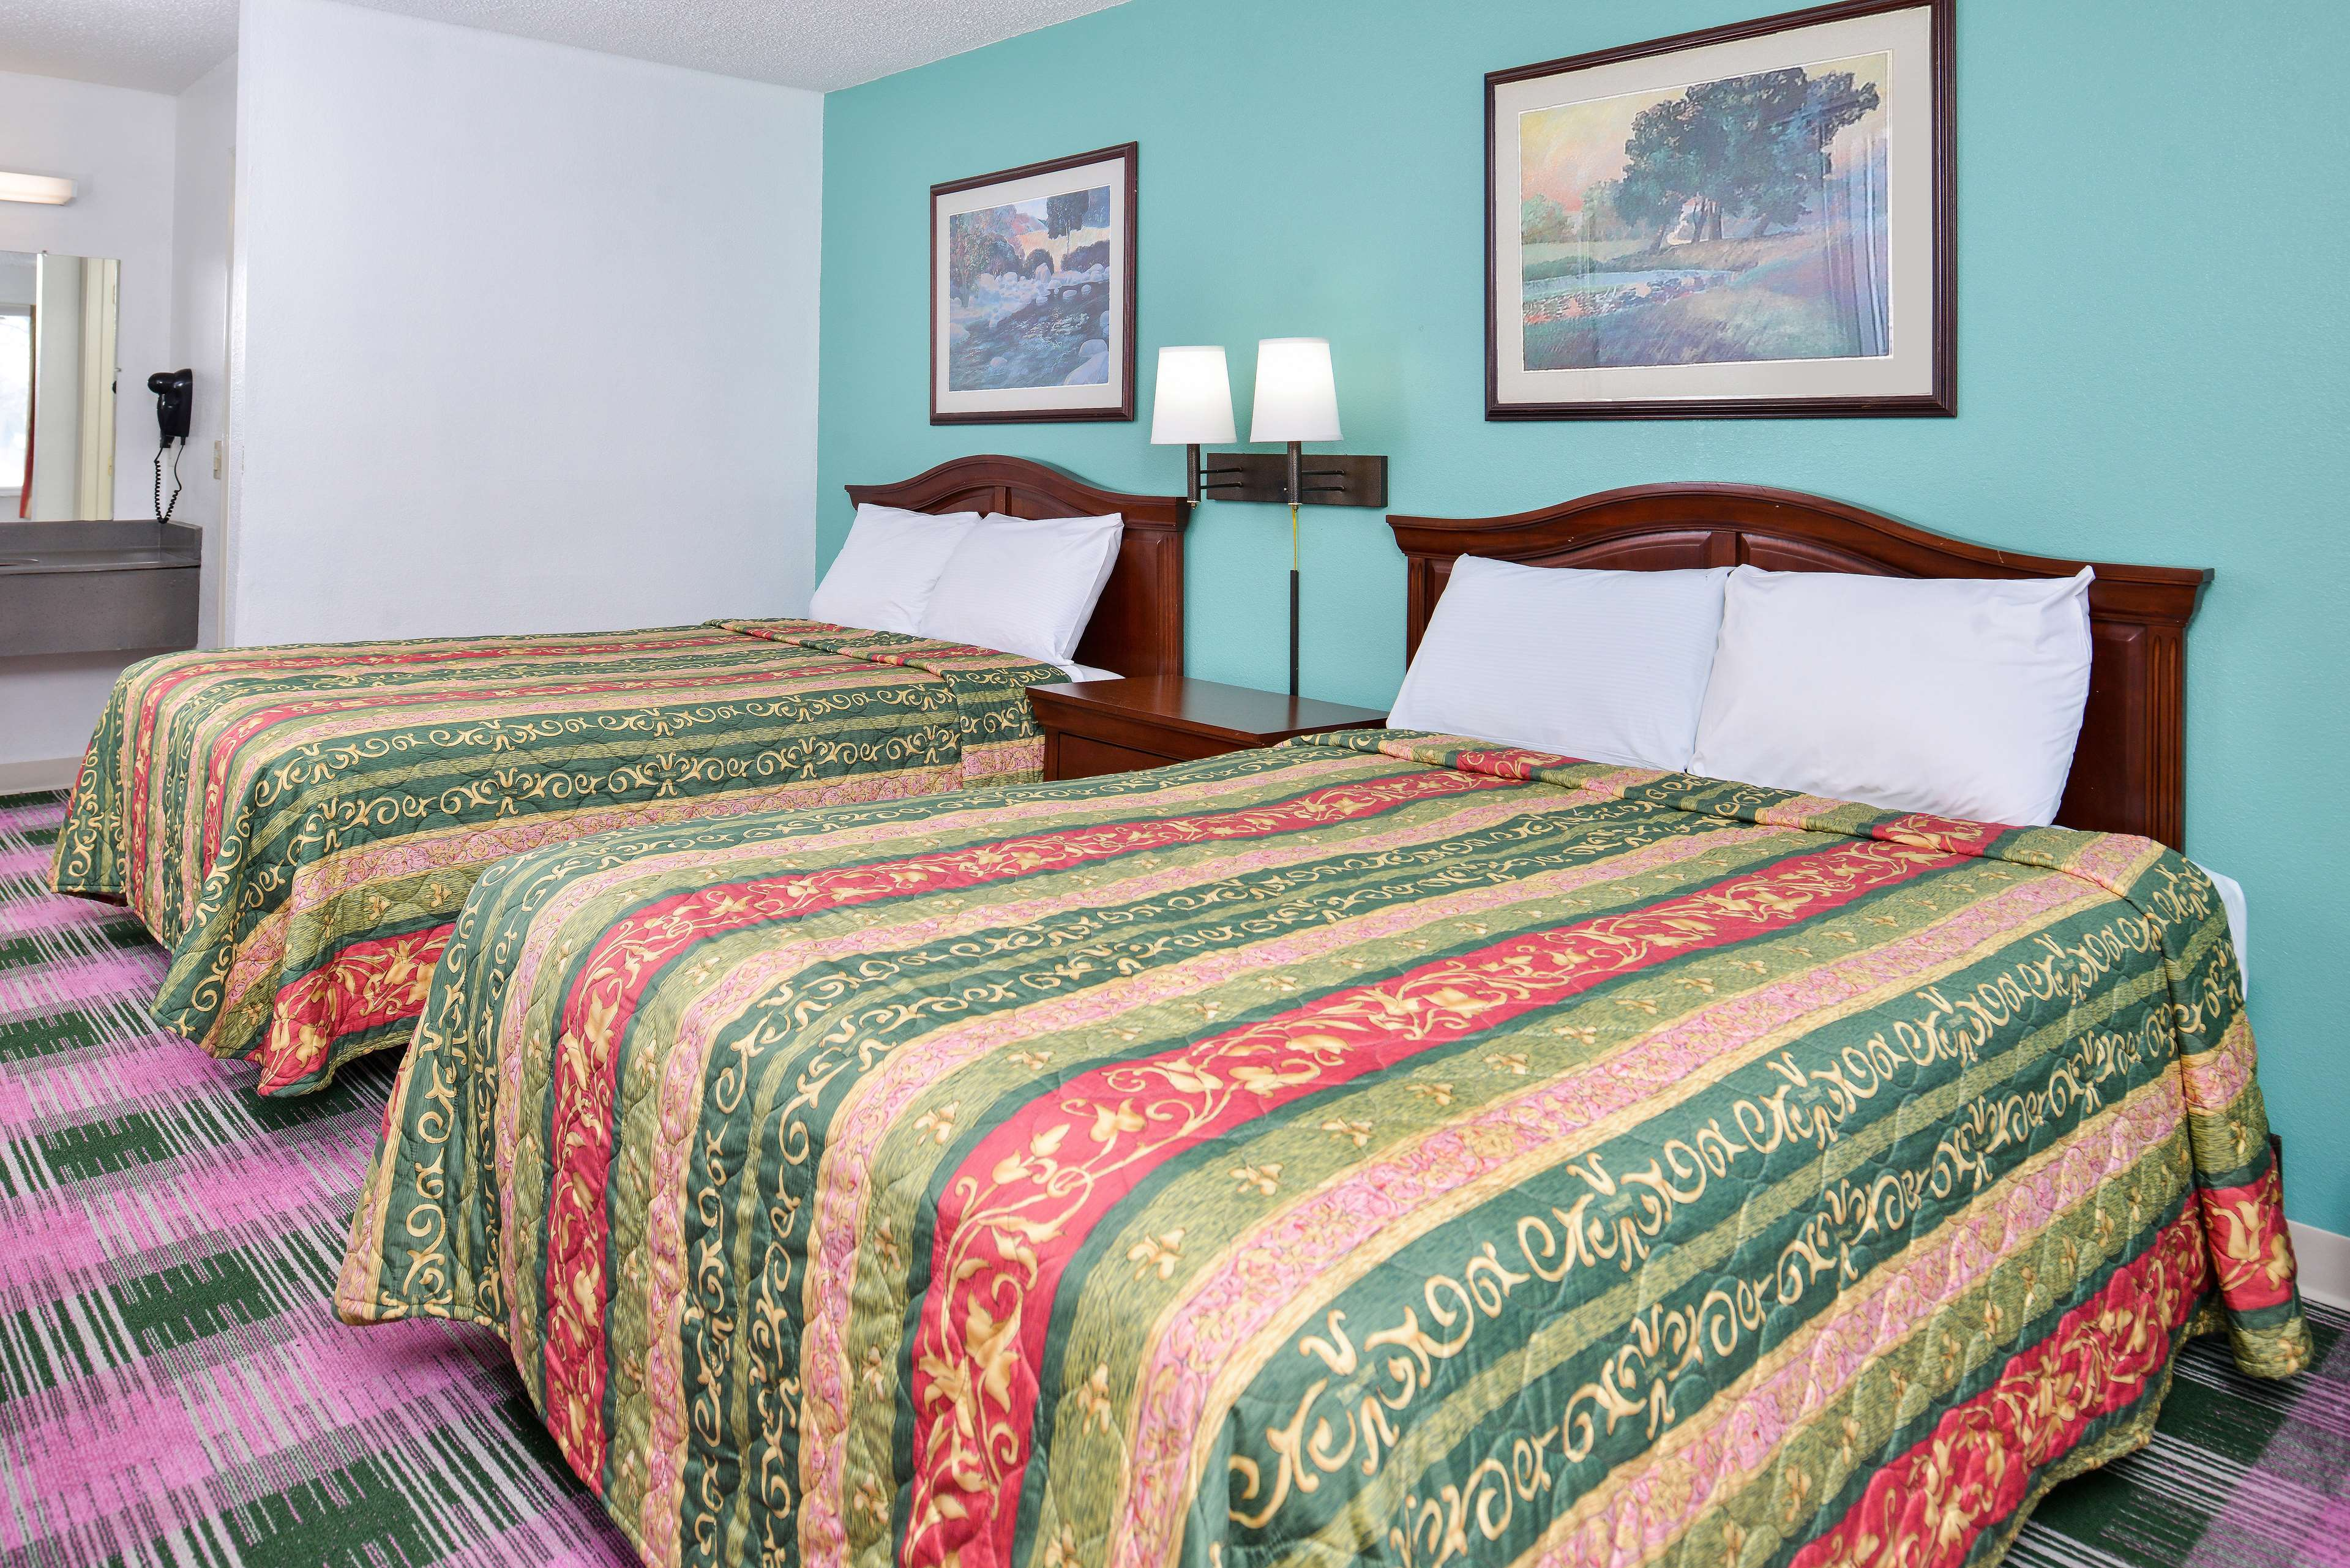 Americas Best Value Inn - Indy South image 11